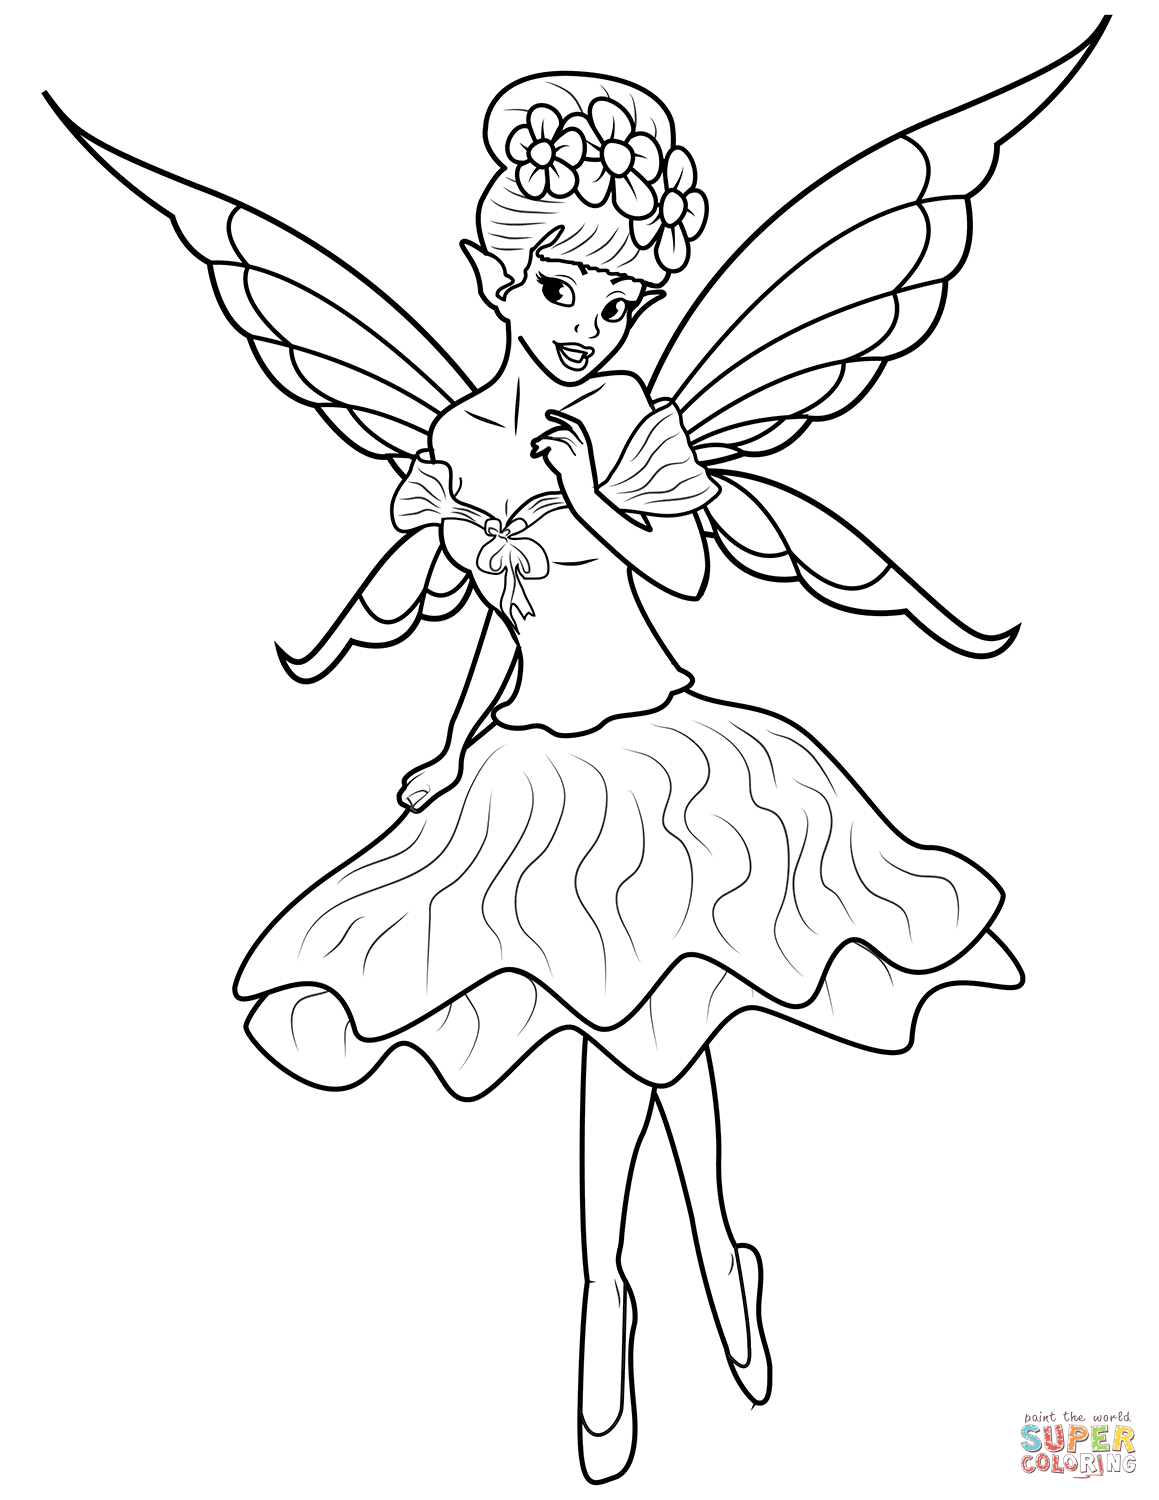 colouring pages of princesses and fairies fairy princess coloring pages print coloring colouring pages and fairies princesses of